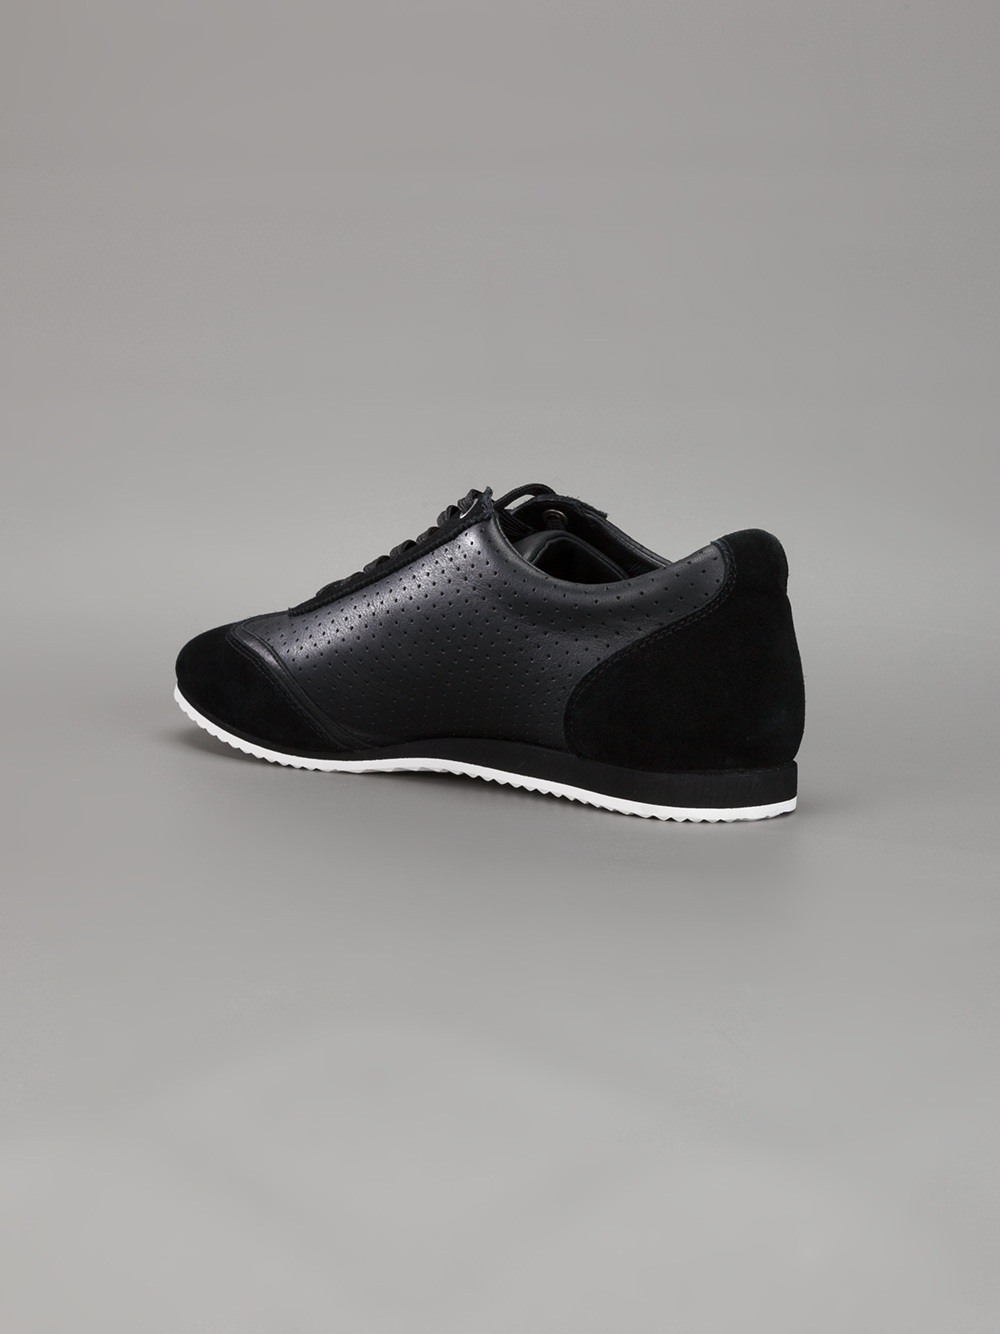 Dolce & Gabbana Perforated Leather Trainers in Black for Men